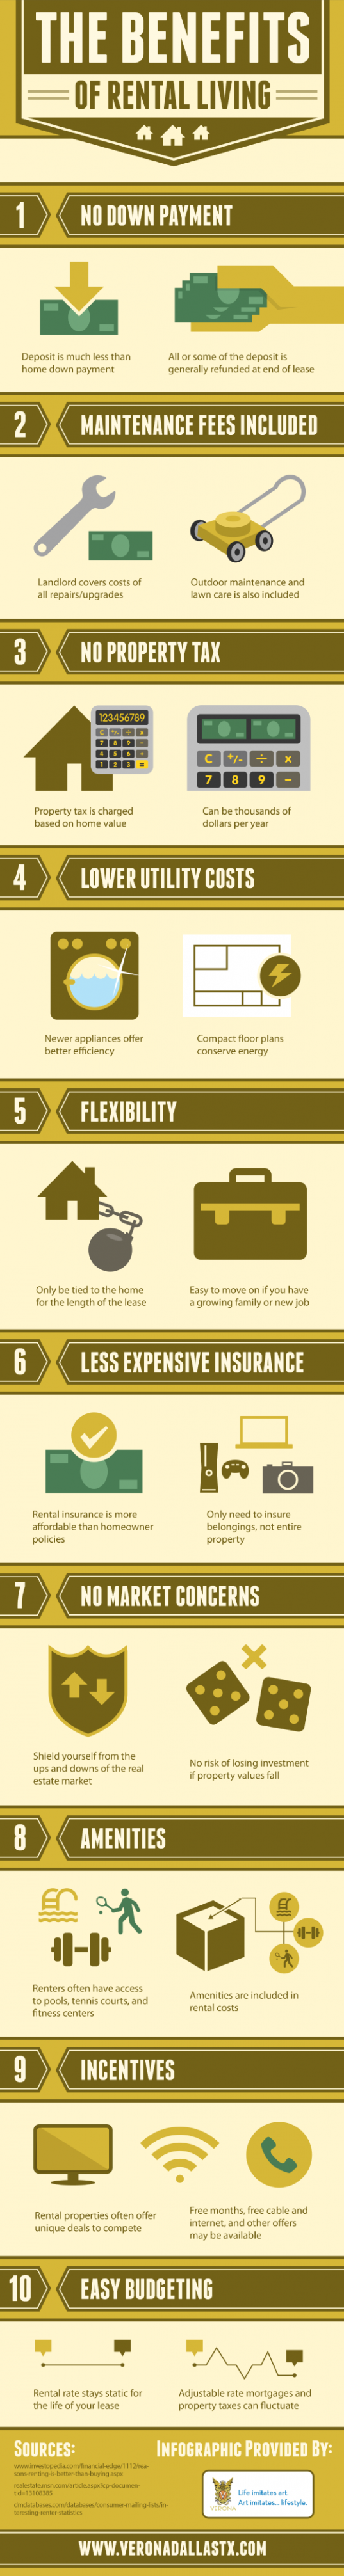 The Benefits of Rental Living